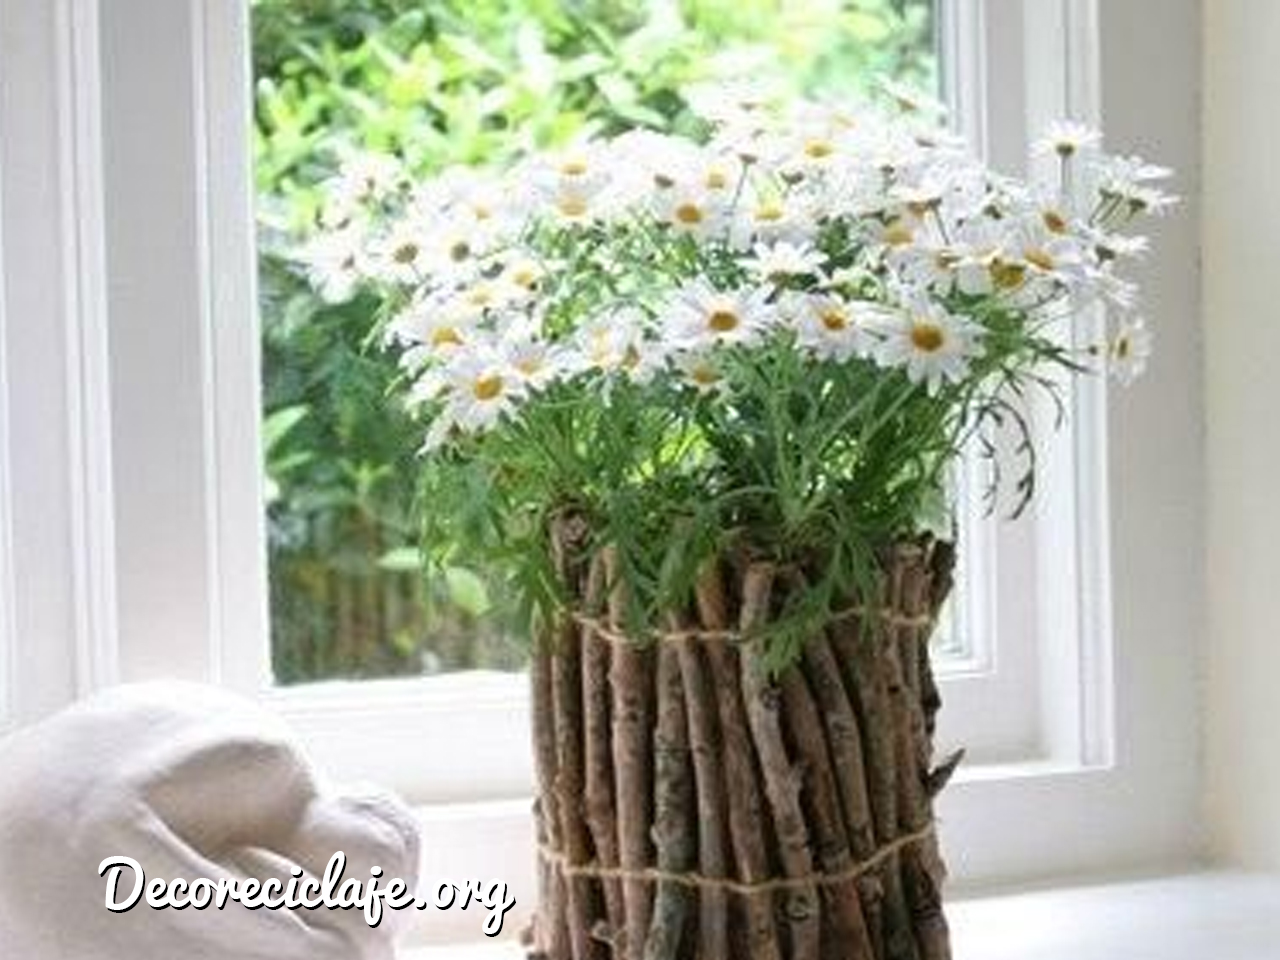 9 ideas de decoraciones recicladas para el hogar top 2018 for Decoraciones para decorar